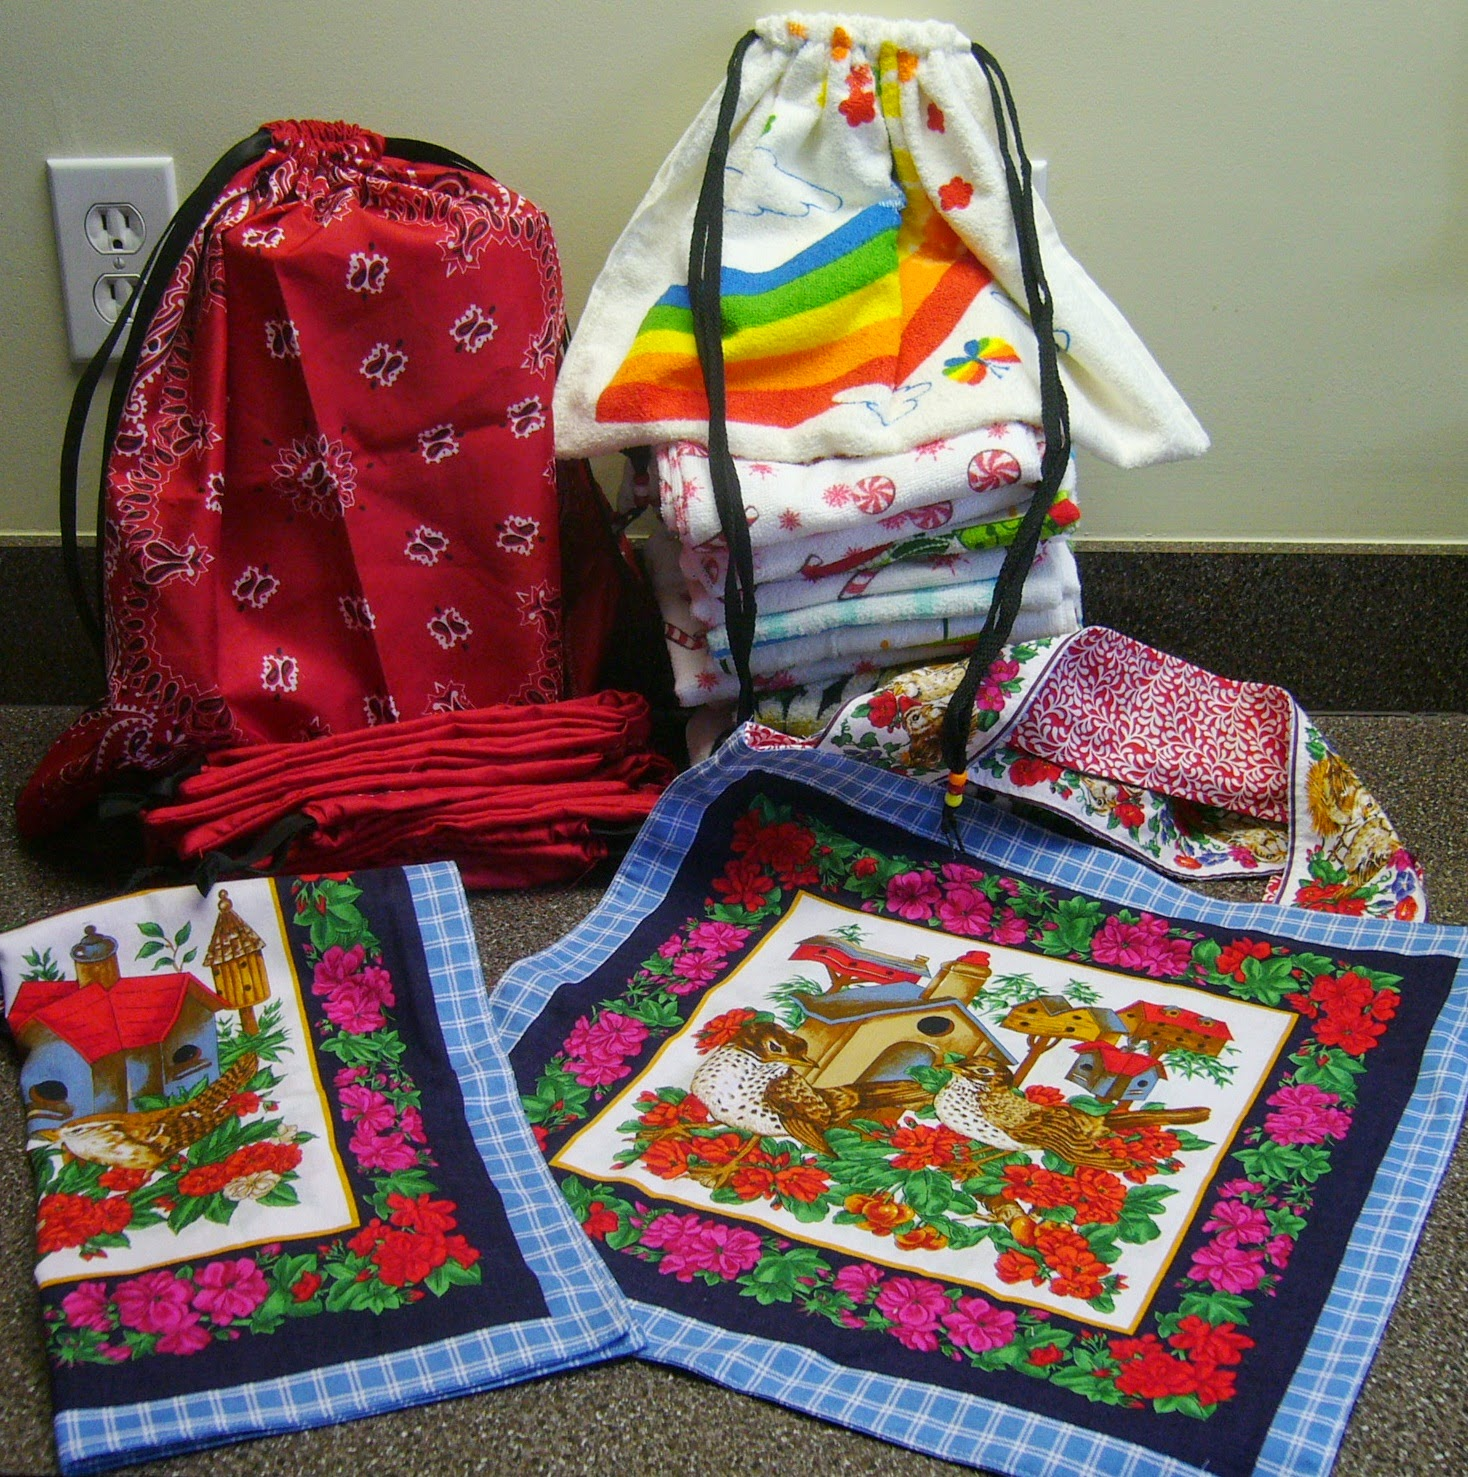 Crafting tote bags for Operation Christmas Child shoeboxes.